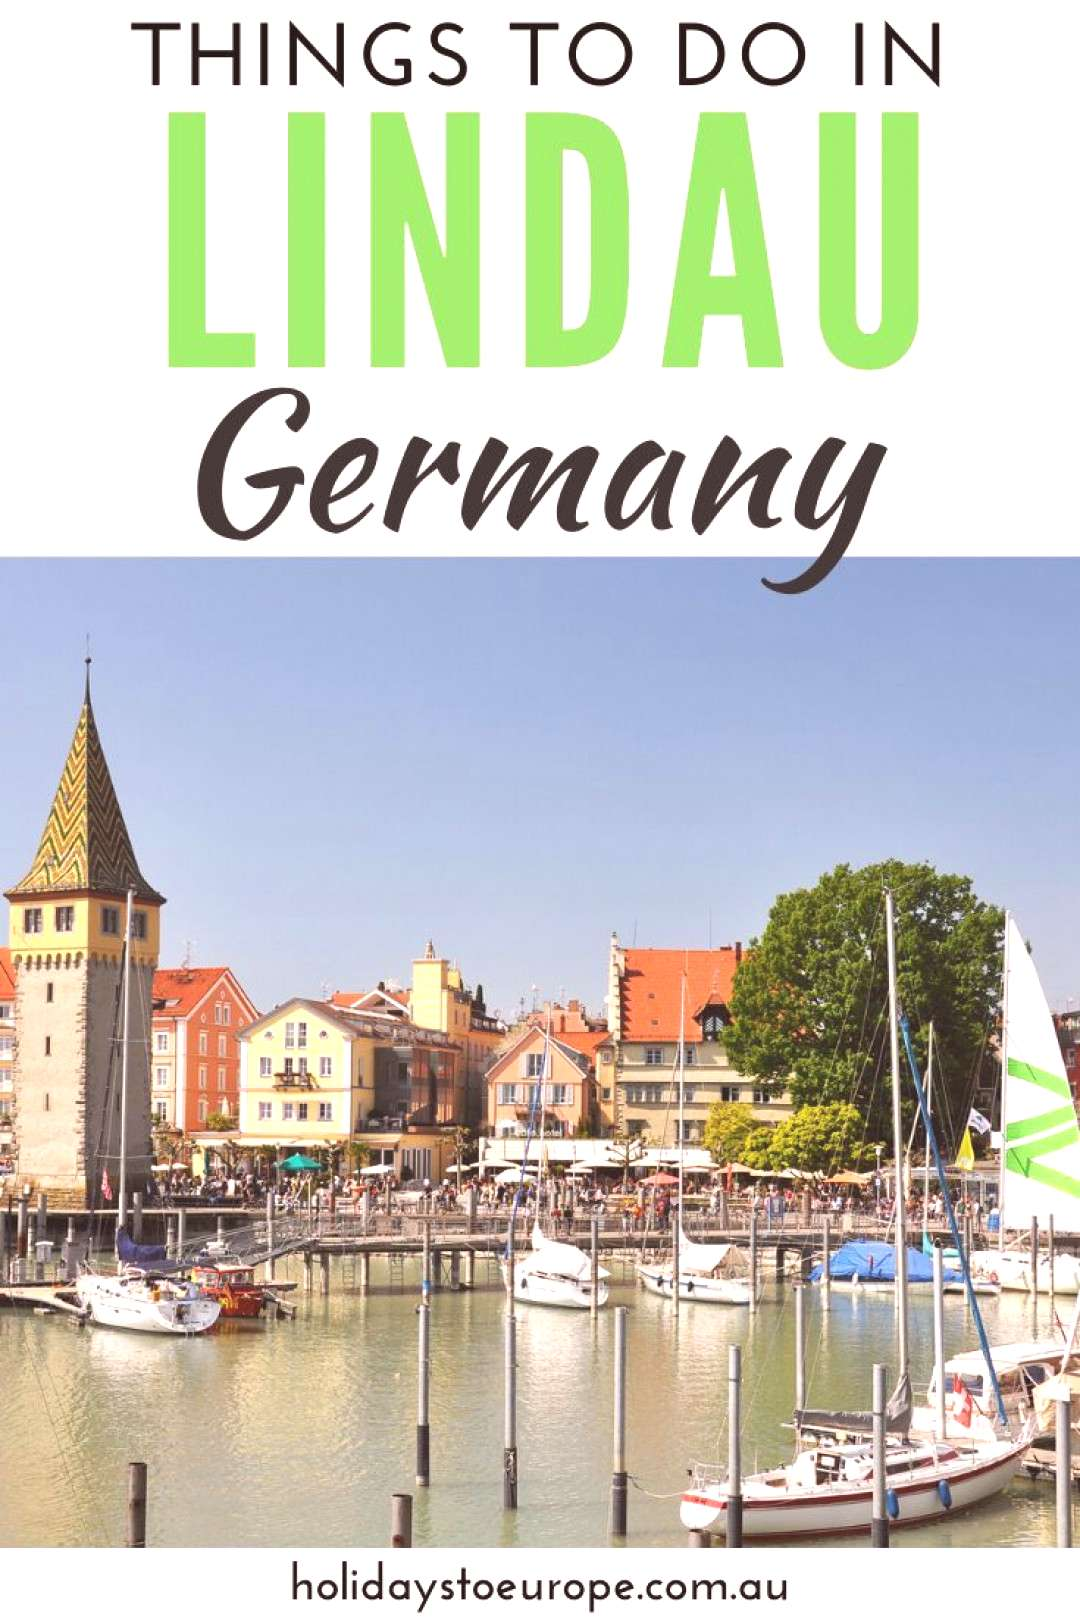 Things to do in Lindau, Germany Lindau is a pretty medieval town sitting on the German shores of La